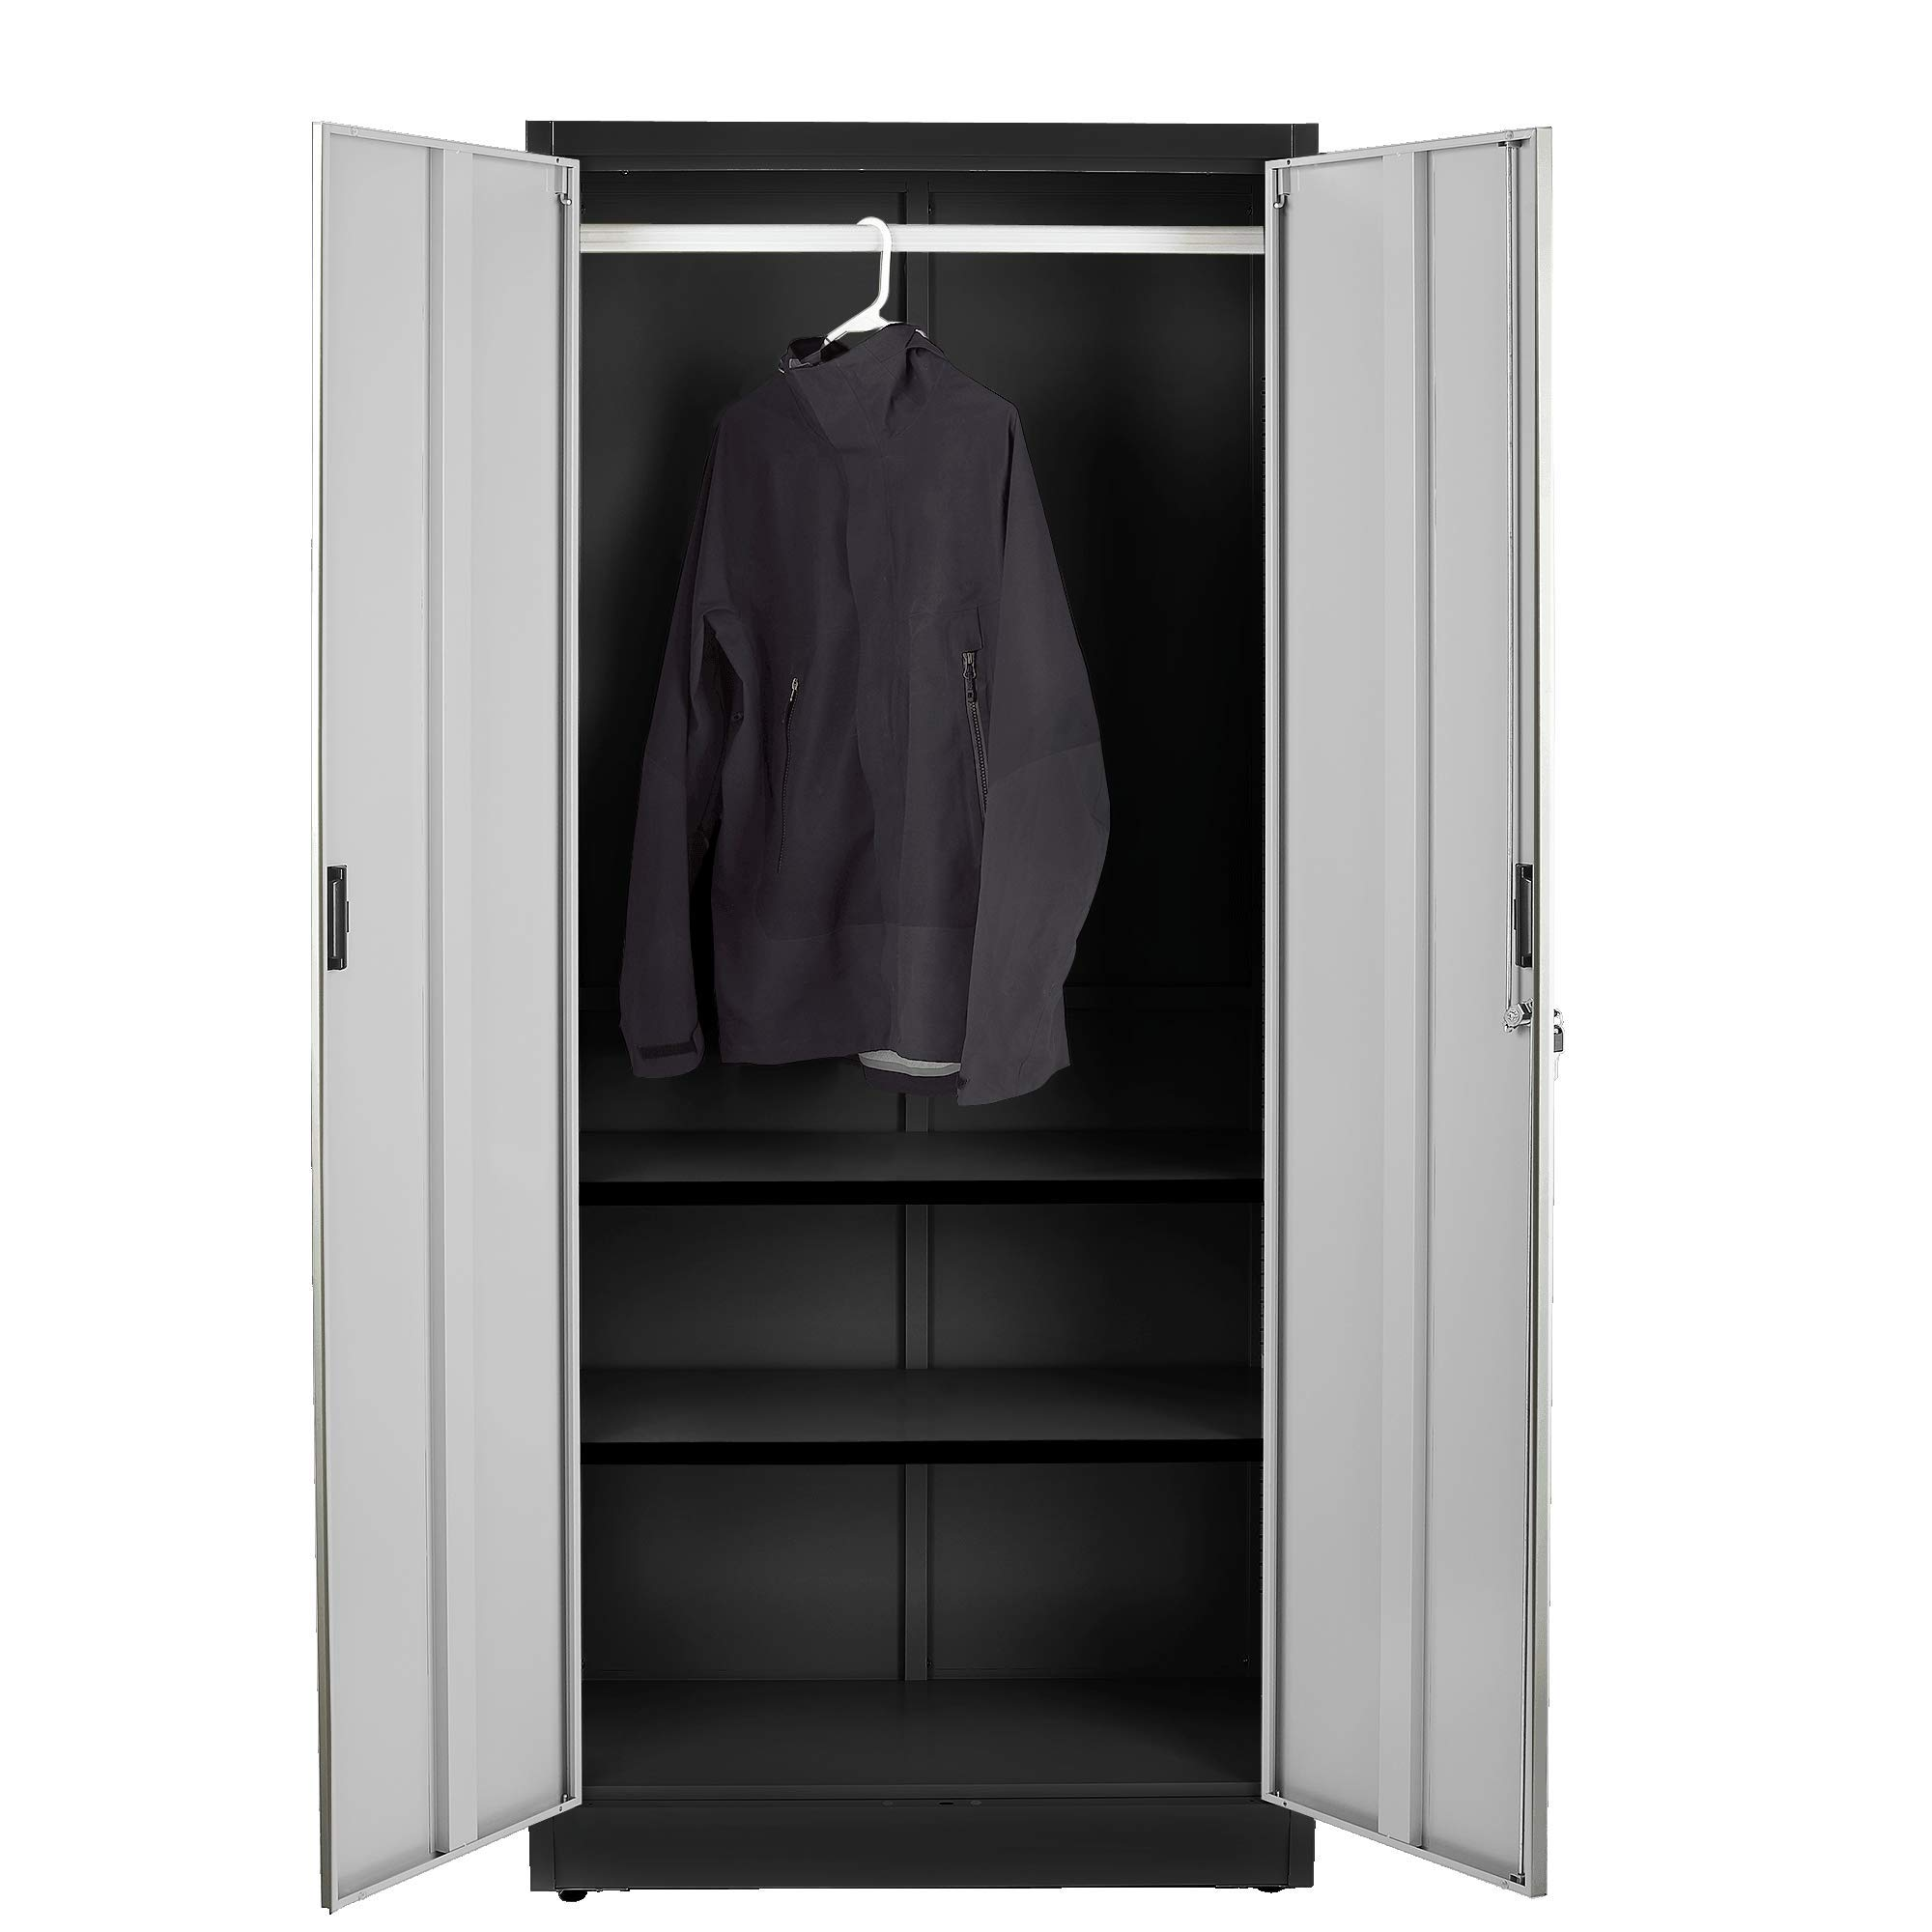 Fedmax Steel Wardrobe Closet Cabinet w/Coat Rack (3 Compartments) 70.86'' Tall x 31.5'' W x 15.75'' D (Black)